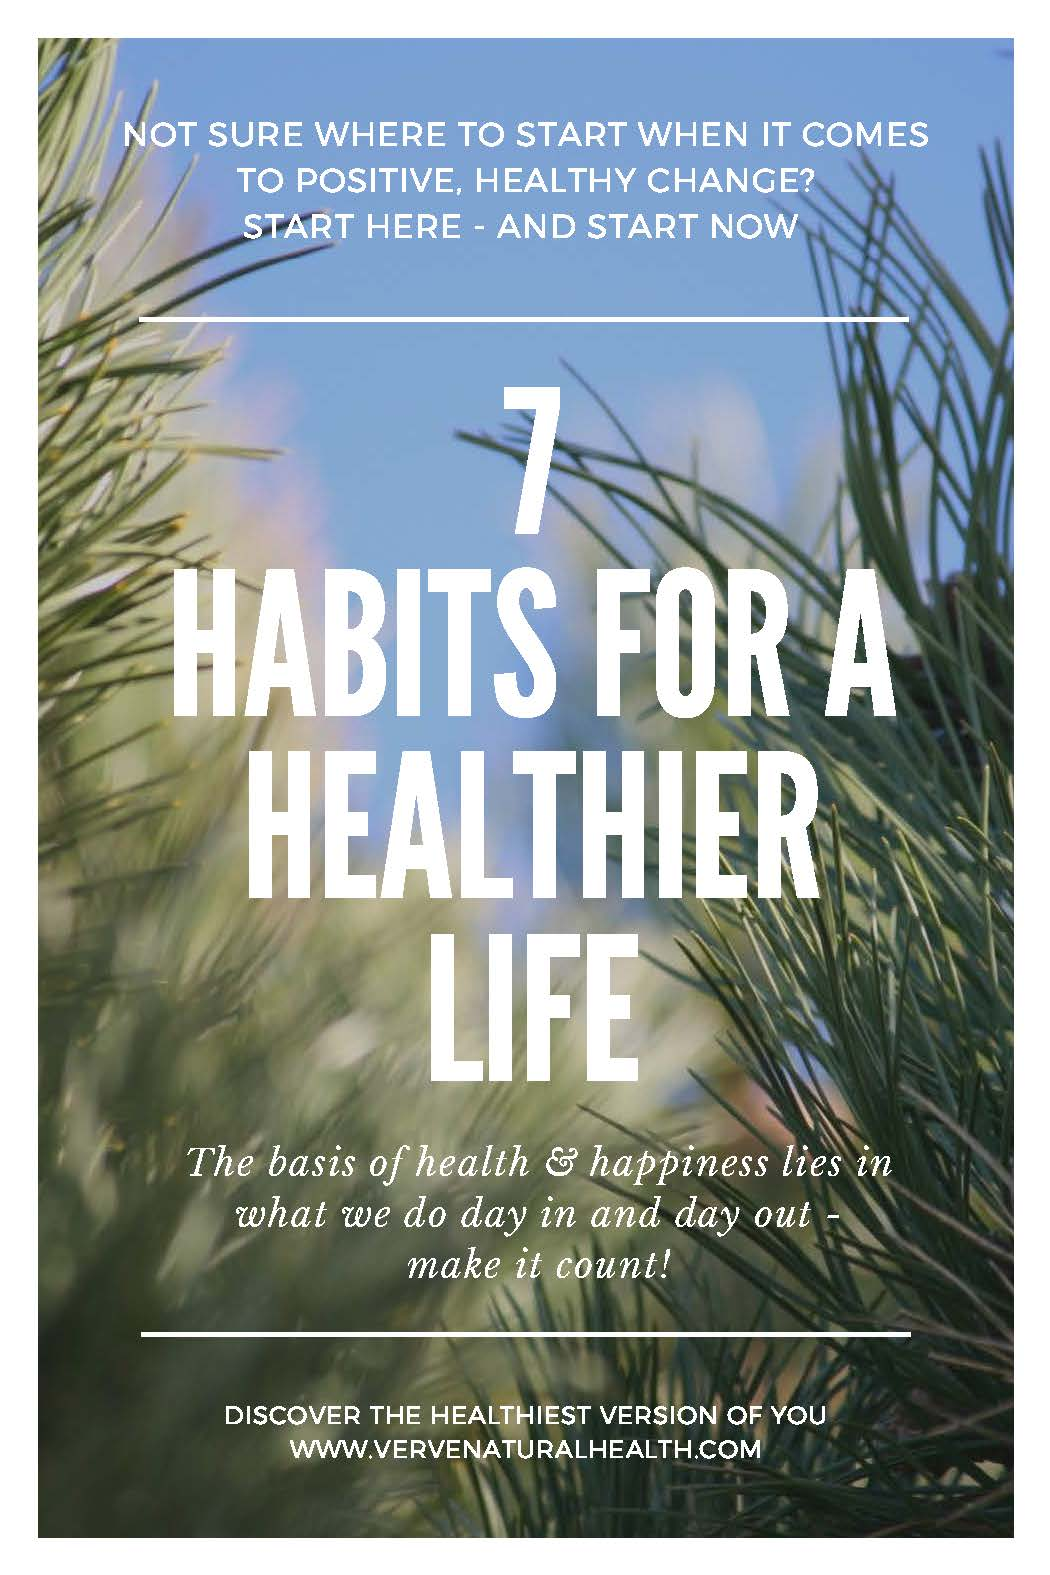 7-Habits-for-a-healthier-life.jpeg